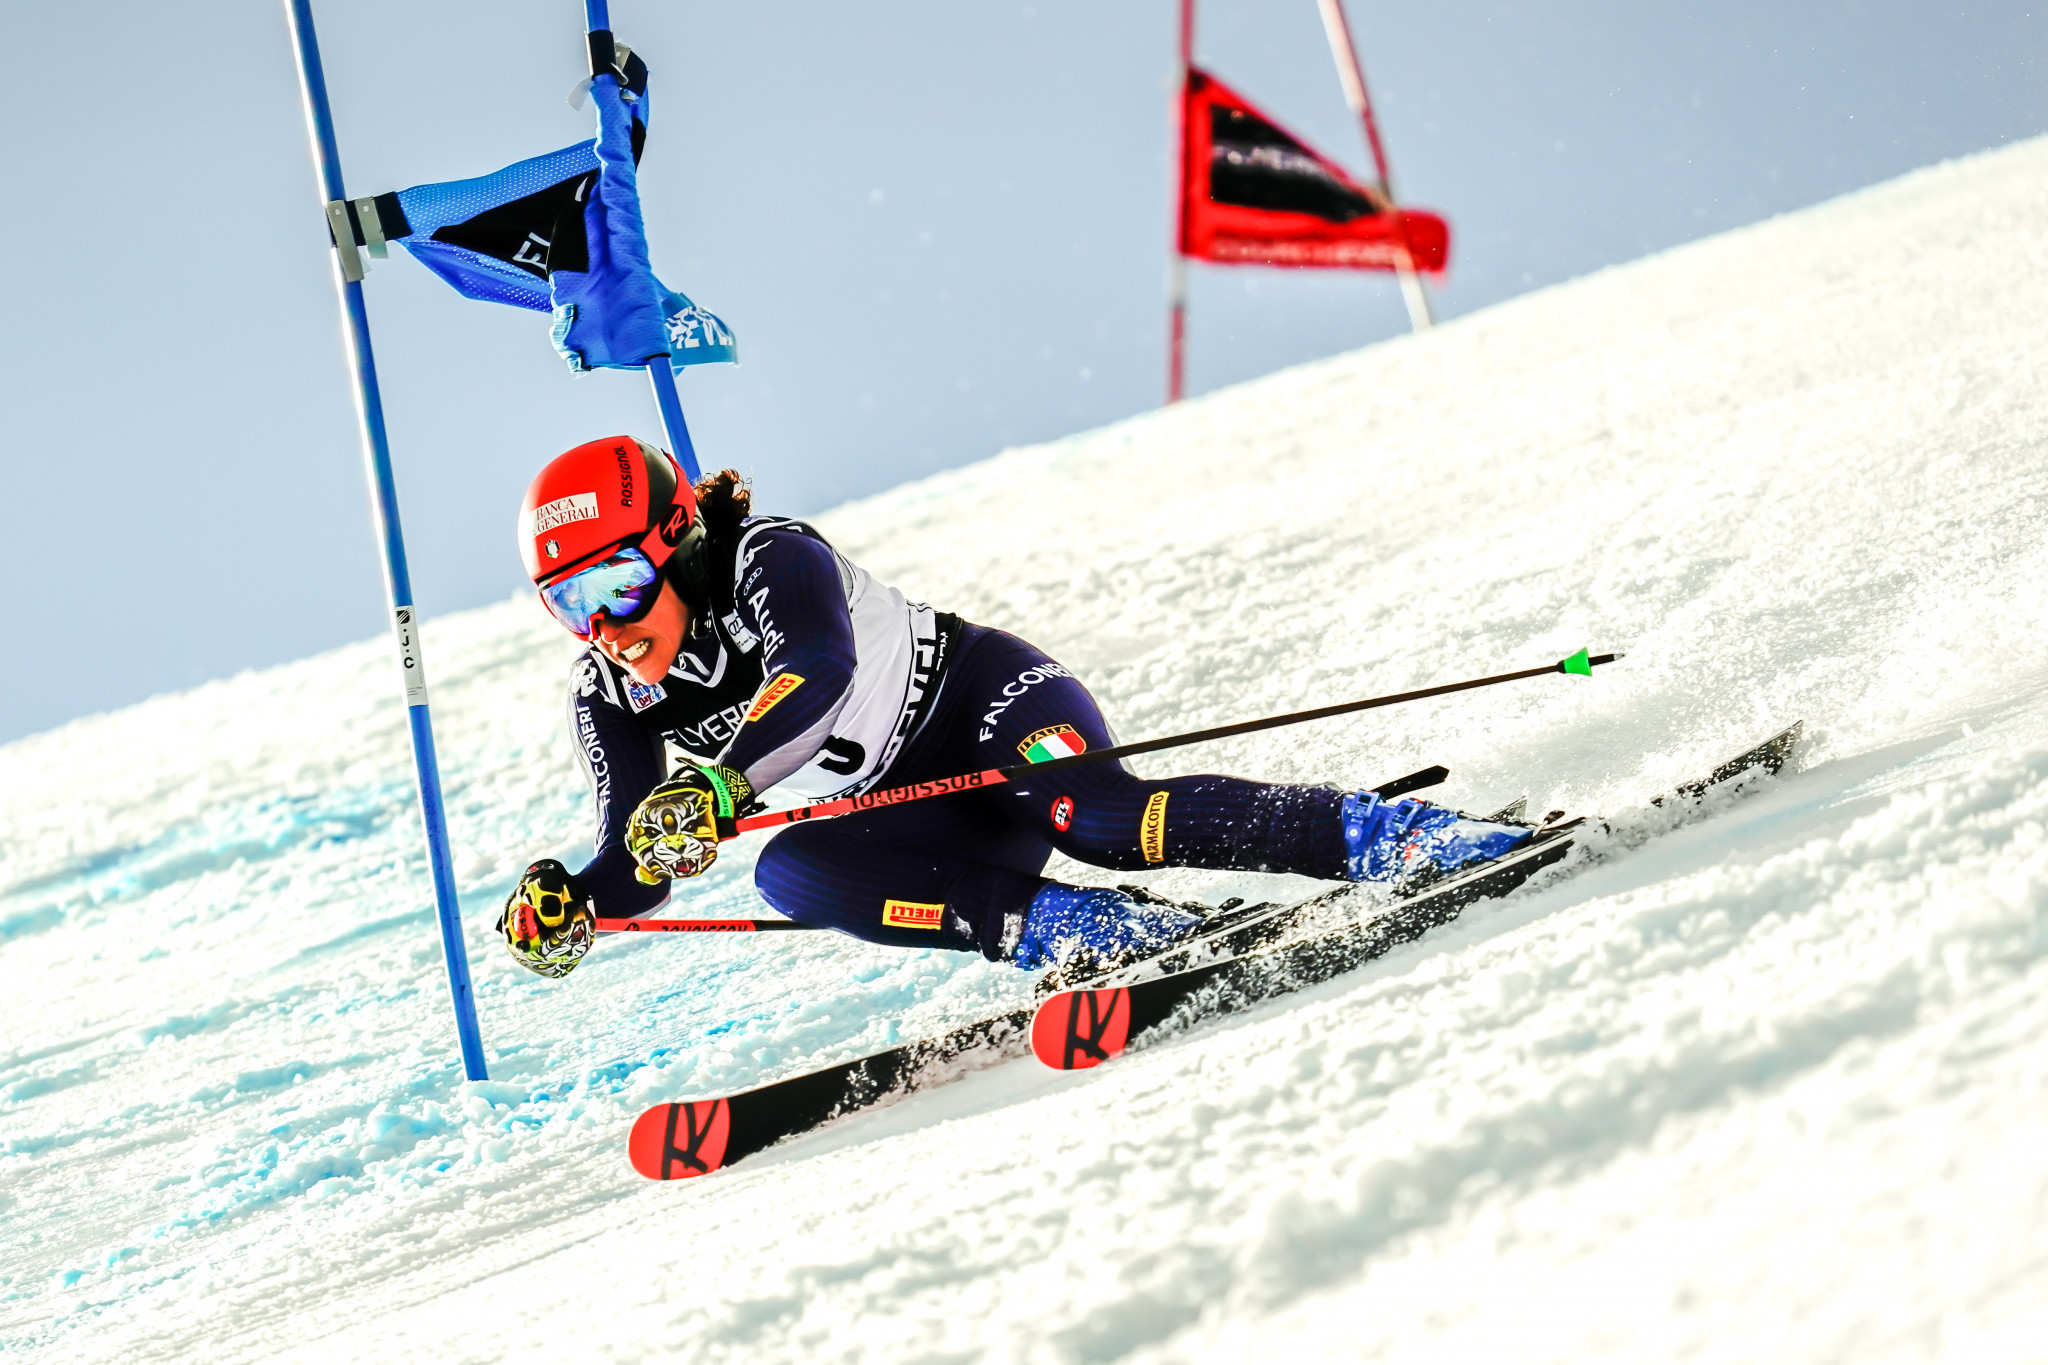 Brignone wins giant slalom at FIS Alpine Skiing World Cup in Courchevel